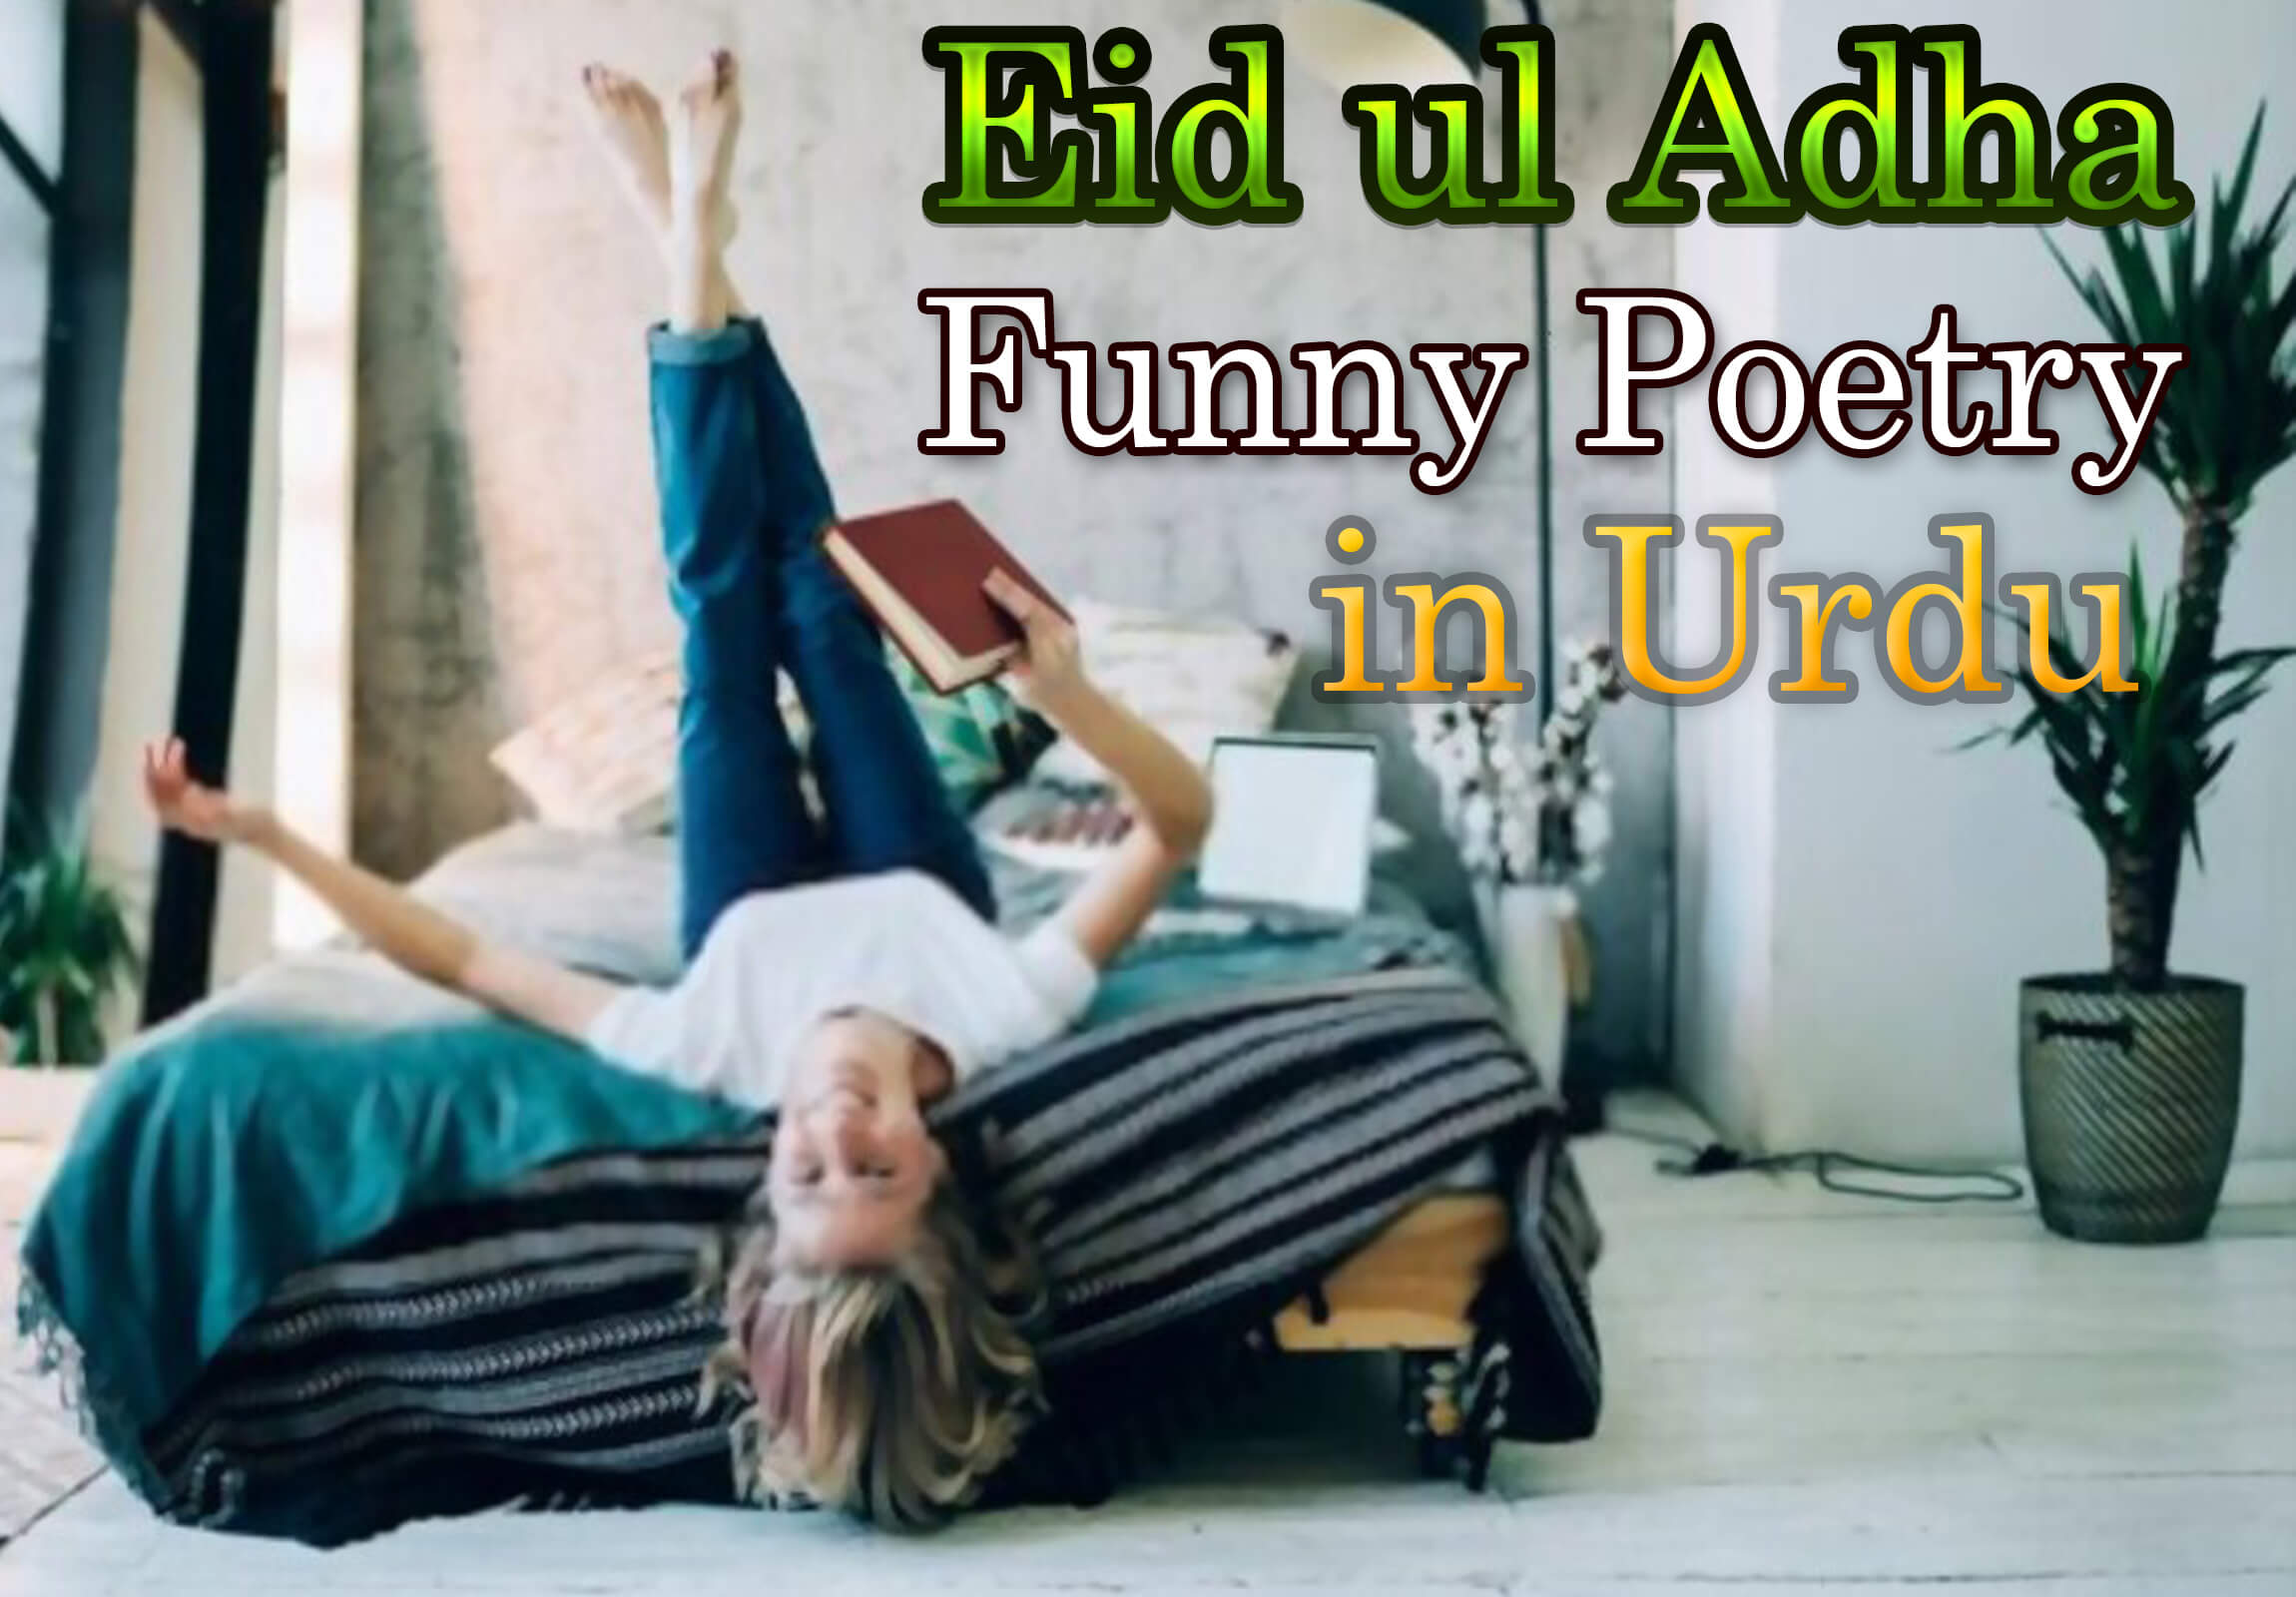 funny poetry image of 2020 for eid ul adha